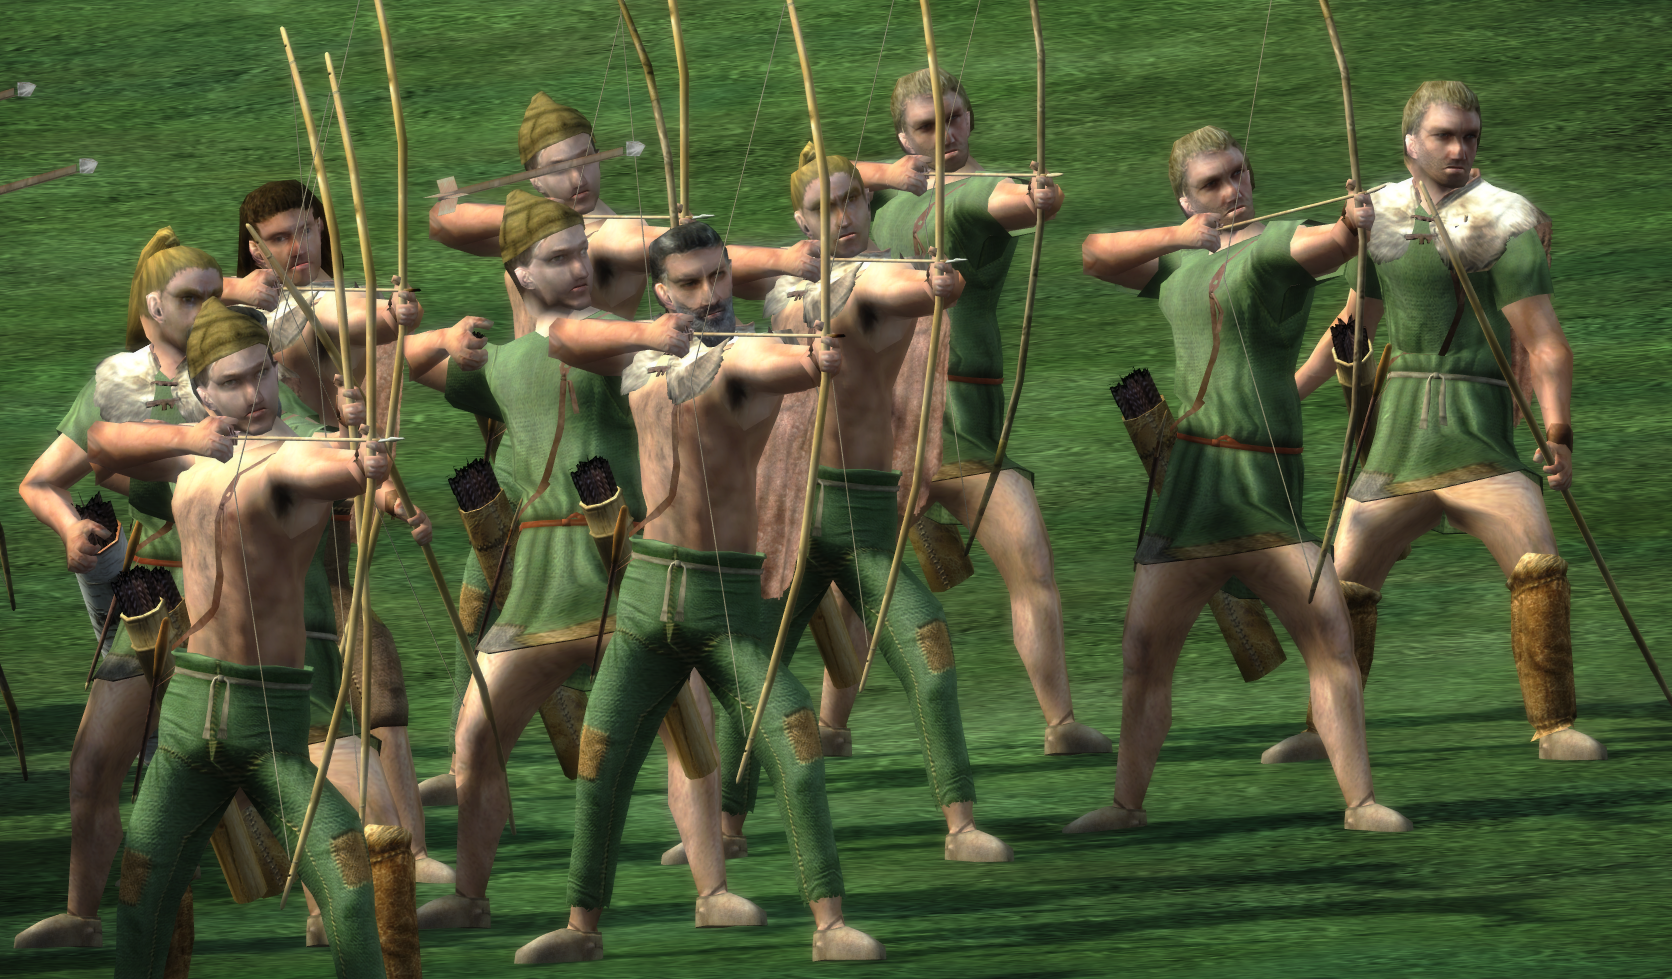 Total war nudity anime picture